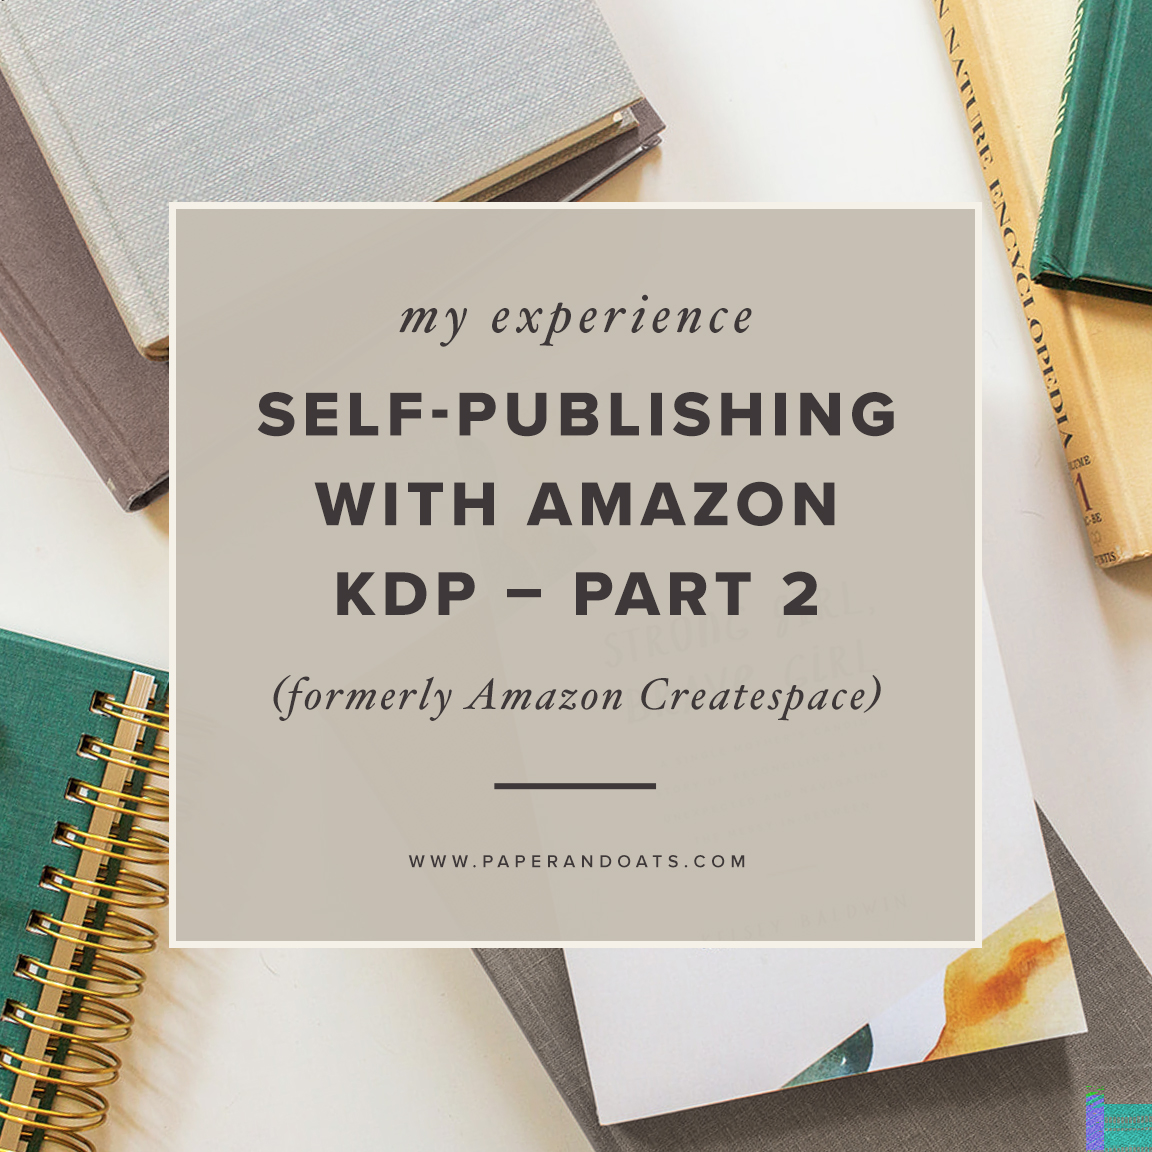 My experience self-publishing with Amazon KDP (formerly Createspace